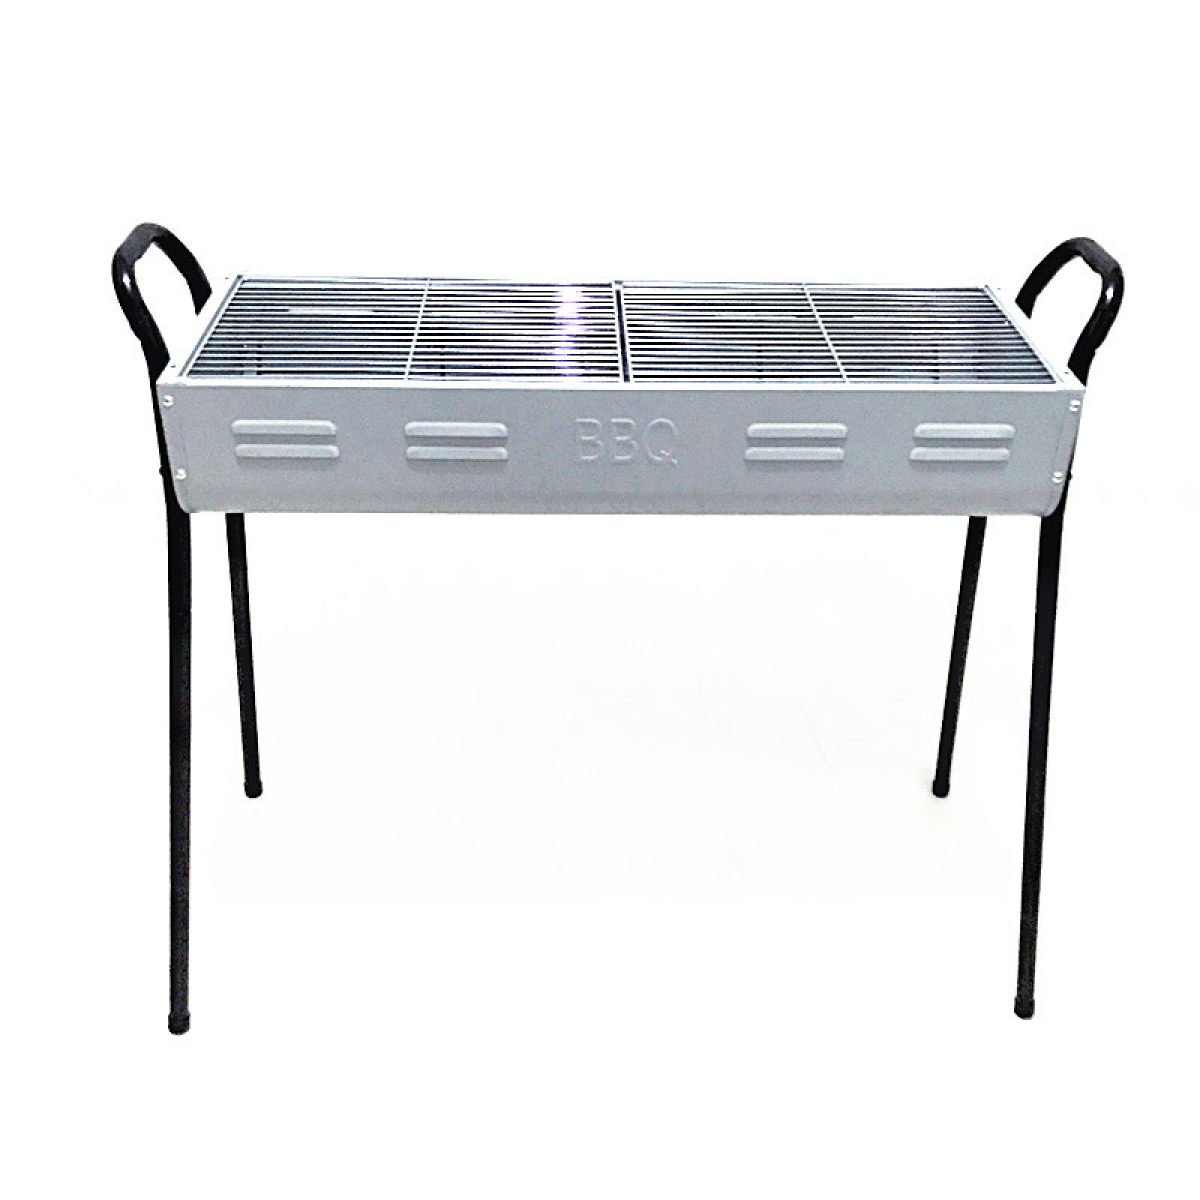 Outdoor Barbecue Grill Barbecue Grill Convenience Outdoor Barbecue Pits Verstellbare Barbecue Pits Convenience Barbecue Pits